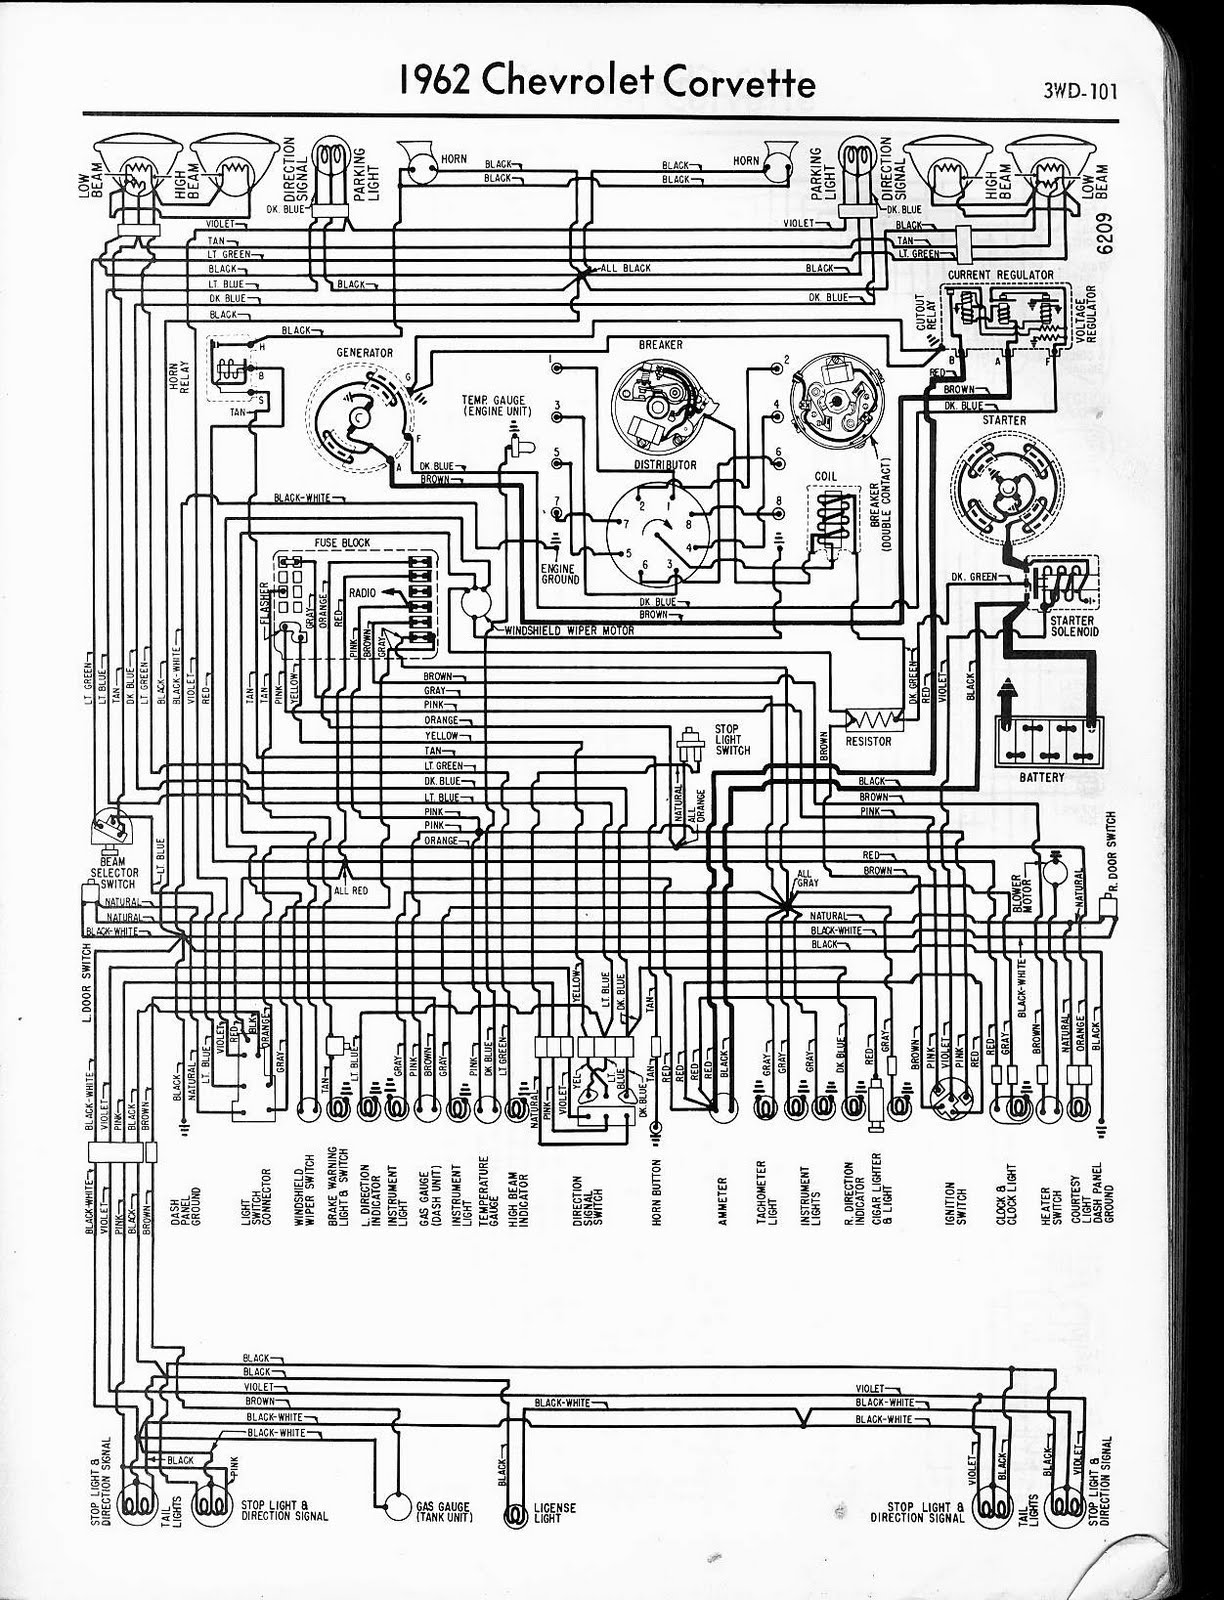 wiring diagram for 1966 corvette the wiring diagram corvette wiring diagrams 1988 corvette wiring diagrams wiring diagram